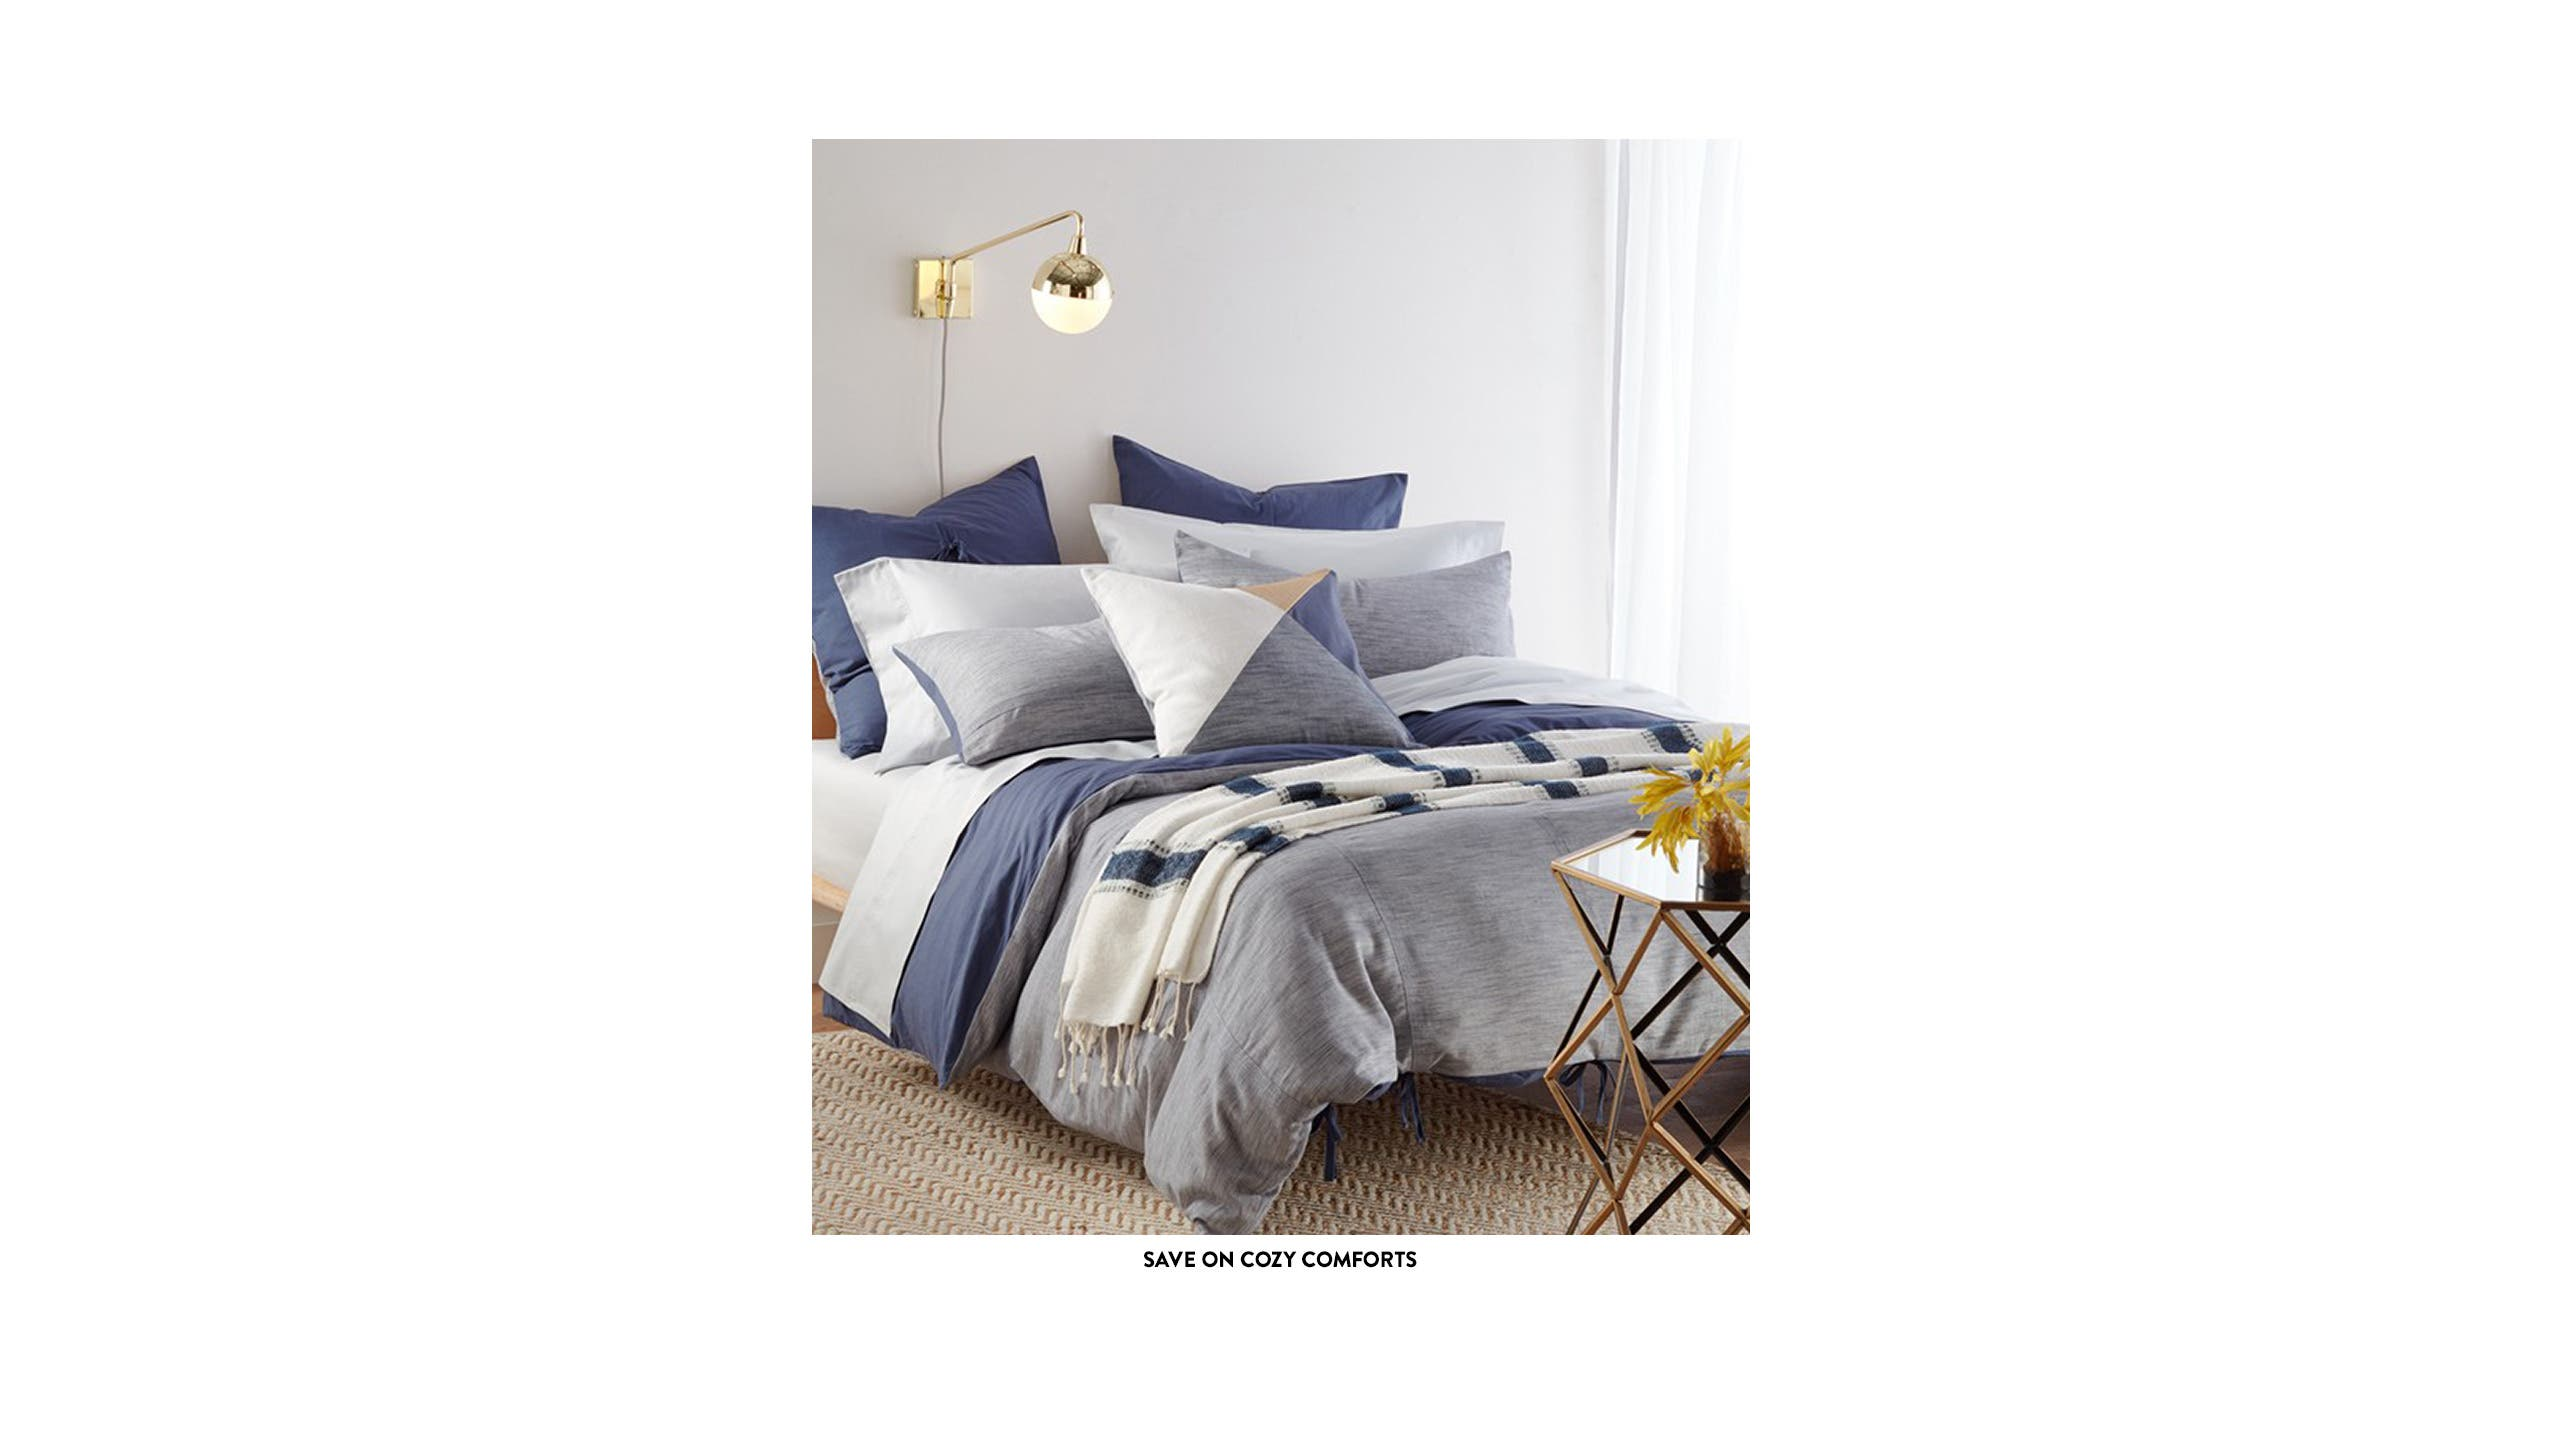 Cozy comforts: bedding on sale.